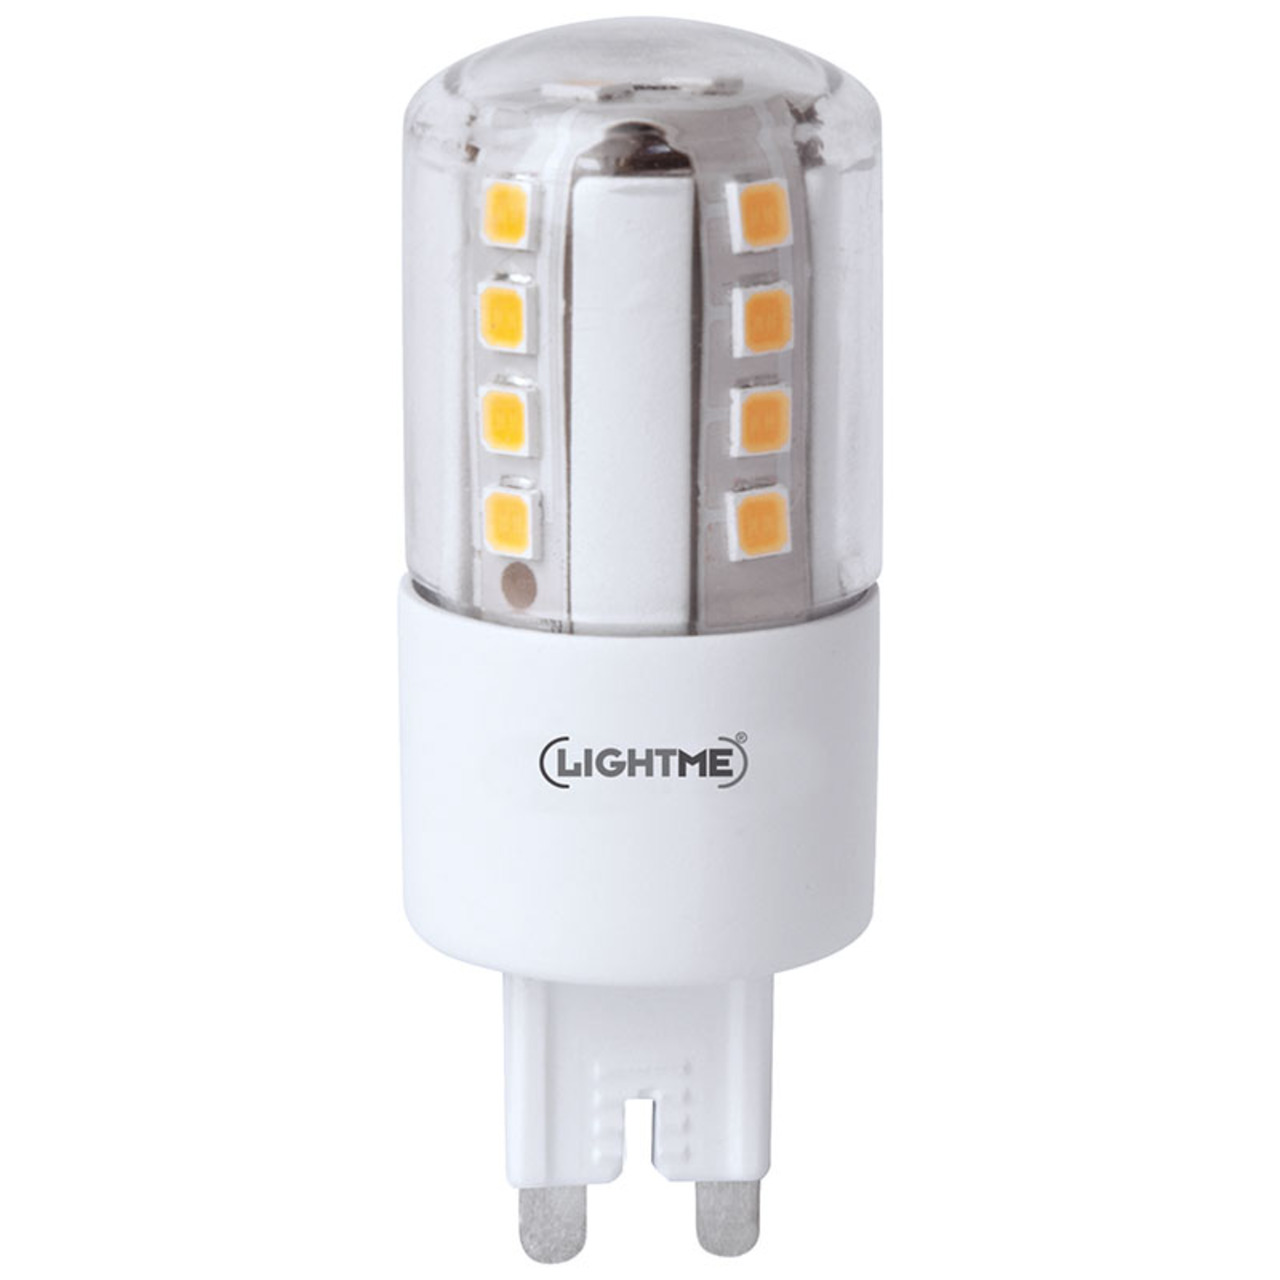 Lightme 4-5-W-G9-LED-Lampe- warmweiss- dimmbar- 510 lm